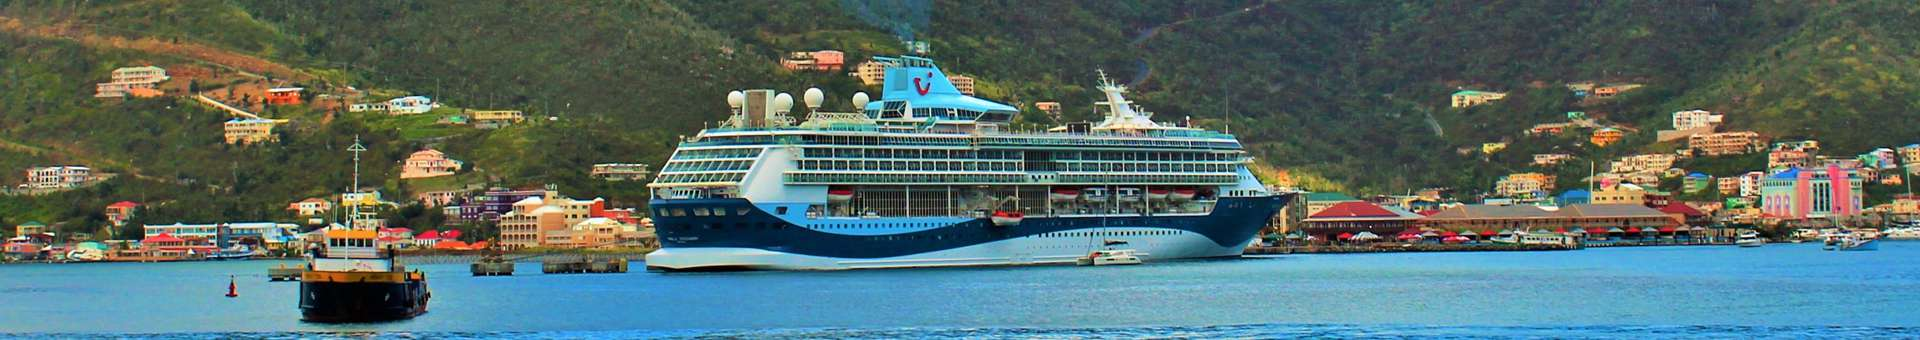 Search Whois information of domain names in British Virgin Islands